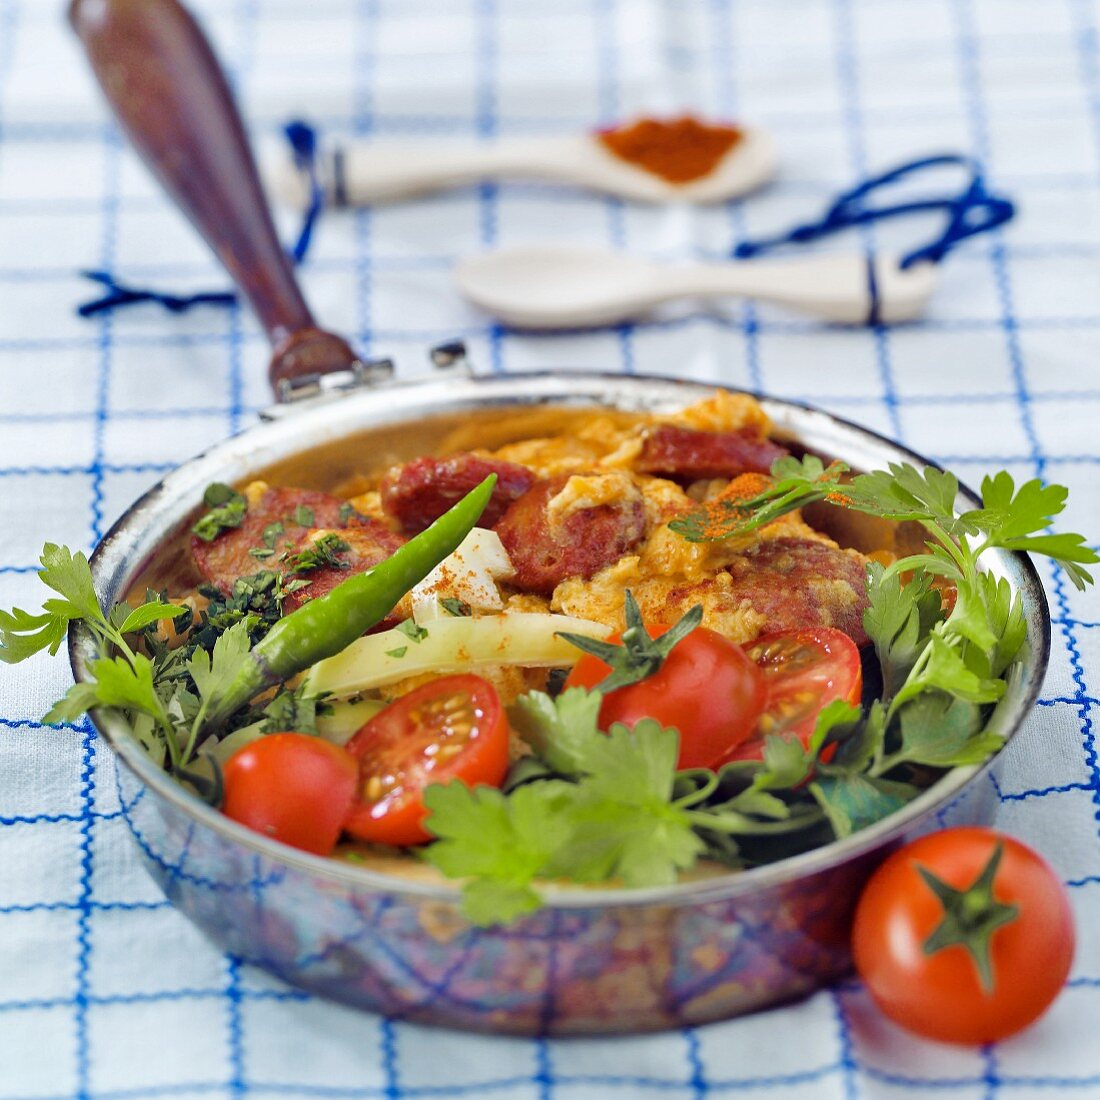 Peasant's omelette with sausage, tomatoes and peppers